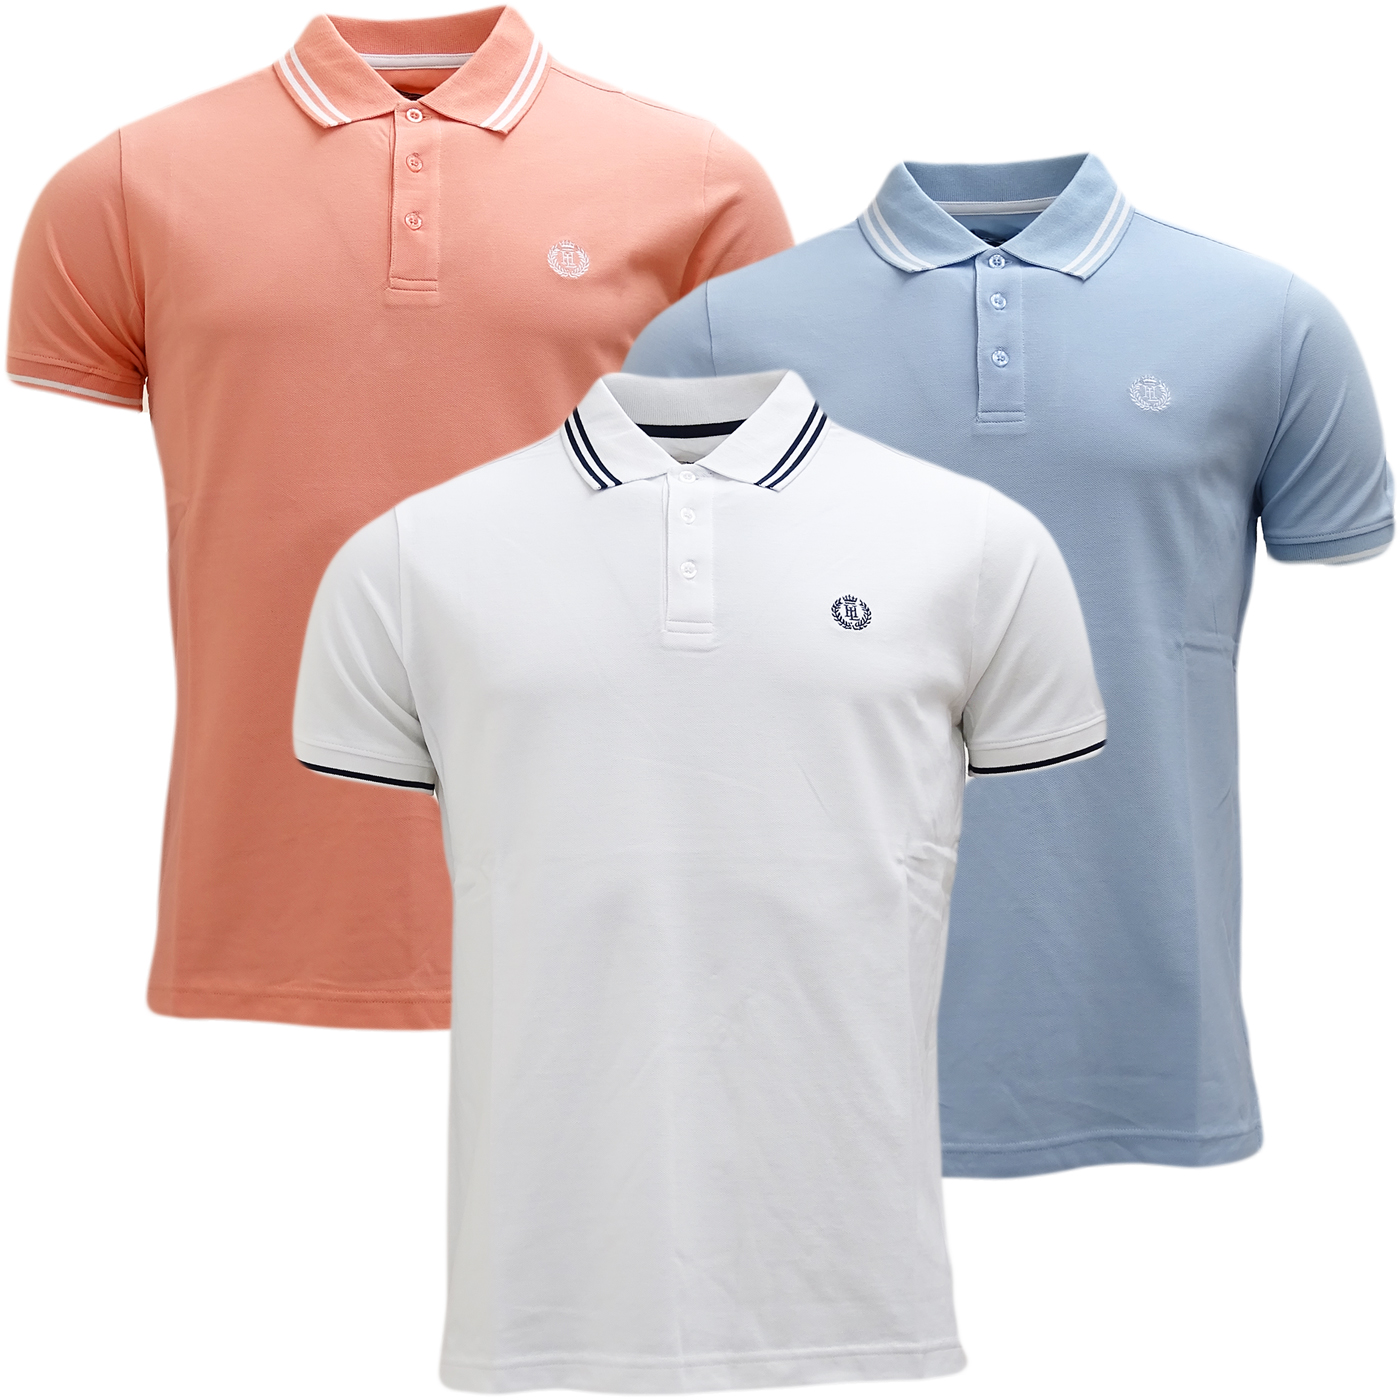 Henri Lloyd Plain Pique Polo Shirt - Byron